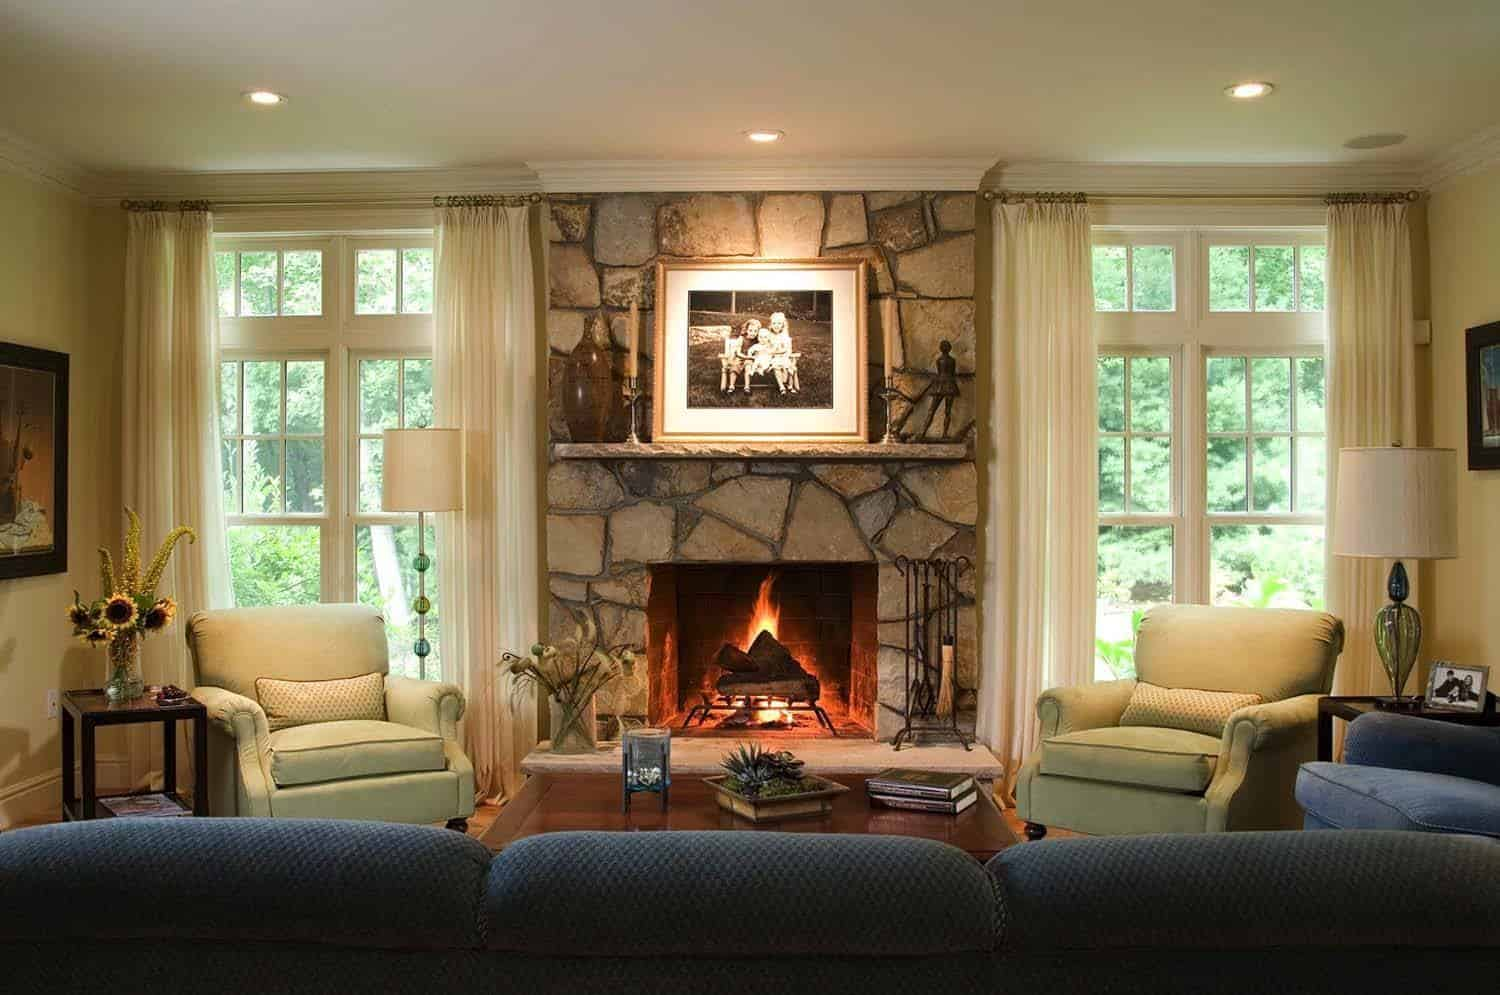 Cozy Fireplace Ideas-18-1 Kindesign